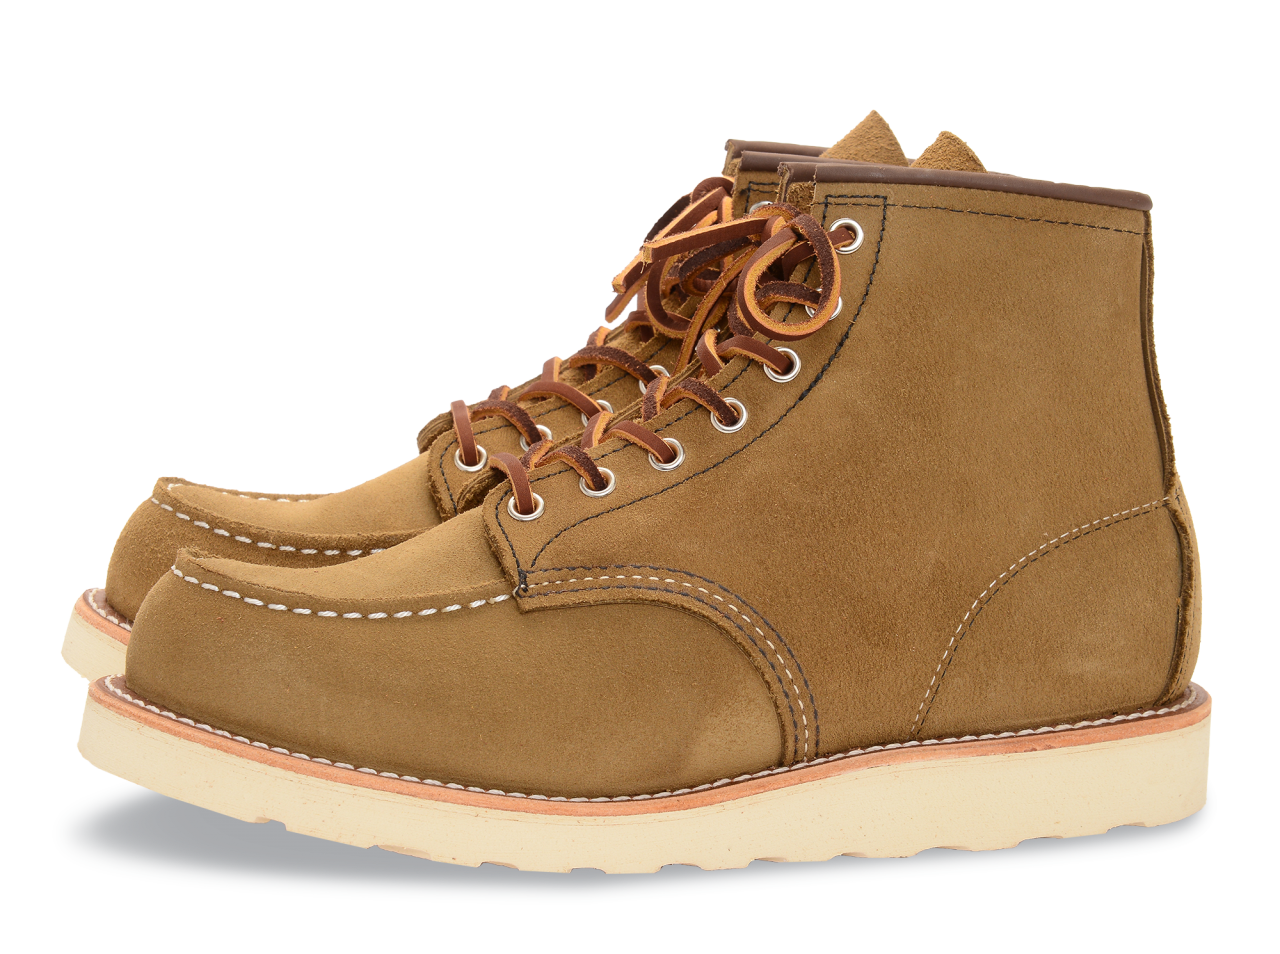 Red Wing 8881 Moc Toe